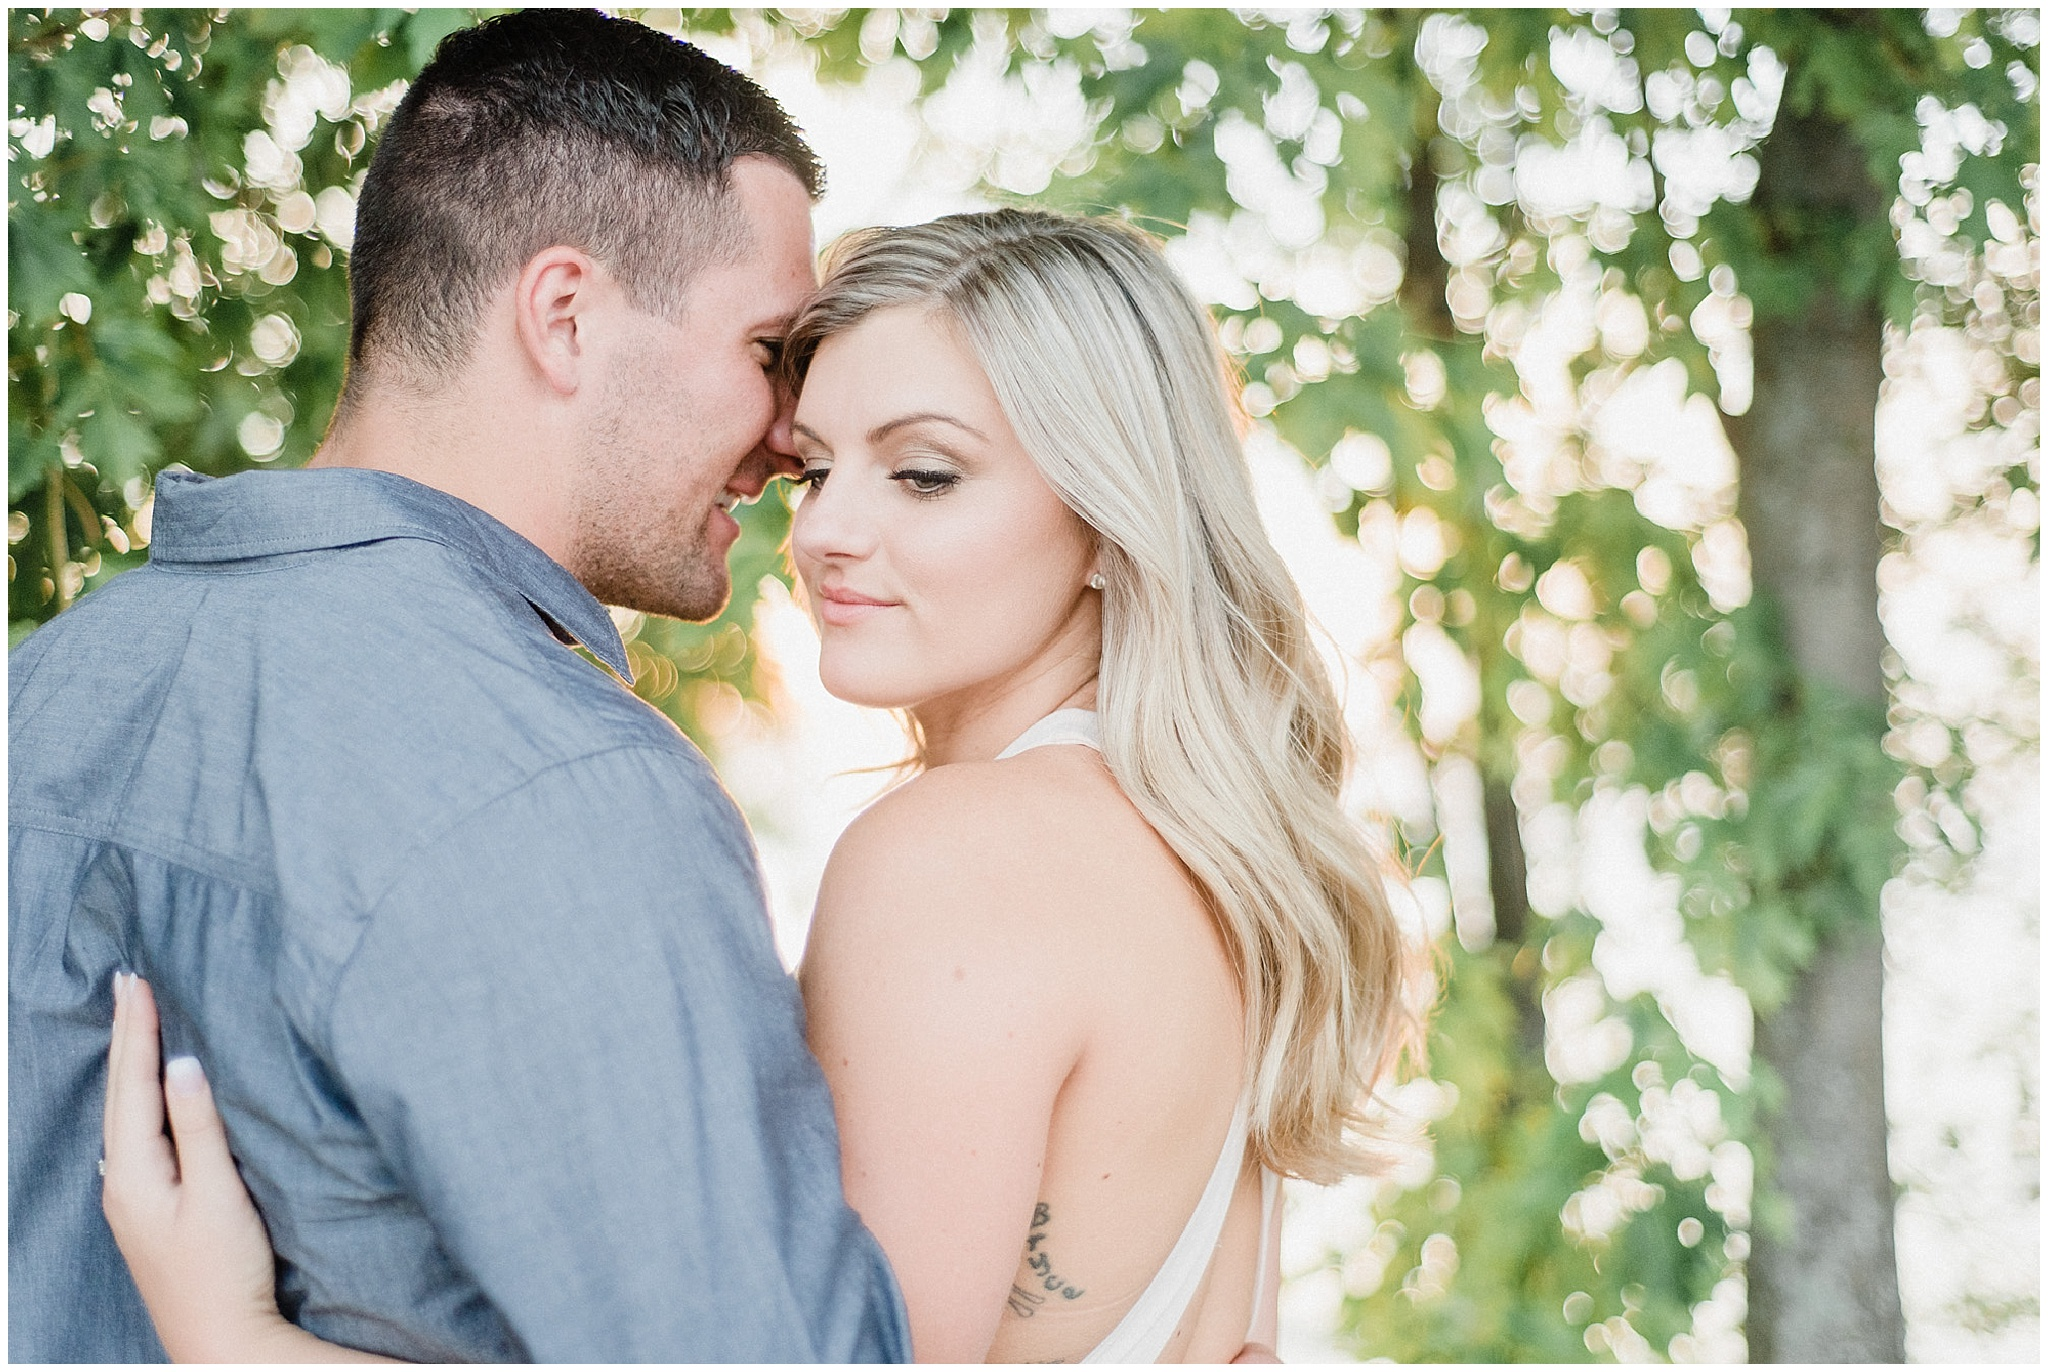 Summertime marina engagement session by Jenn Kavanagh Photography